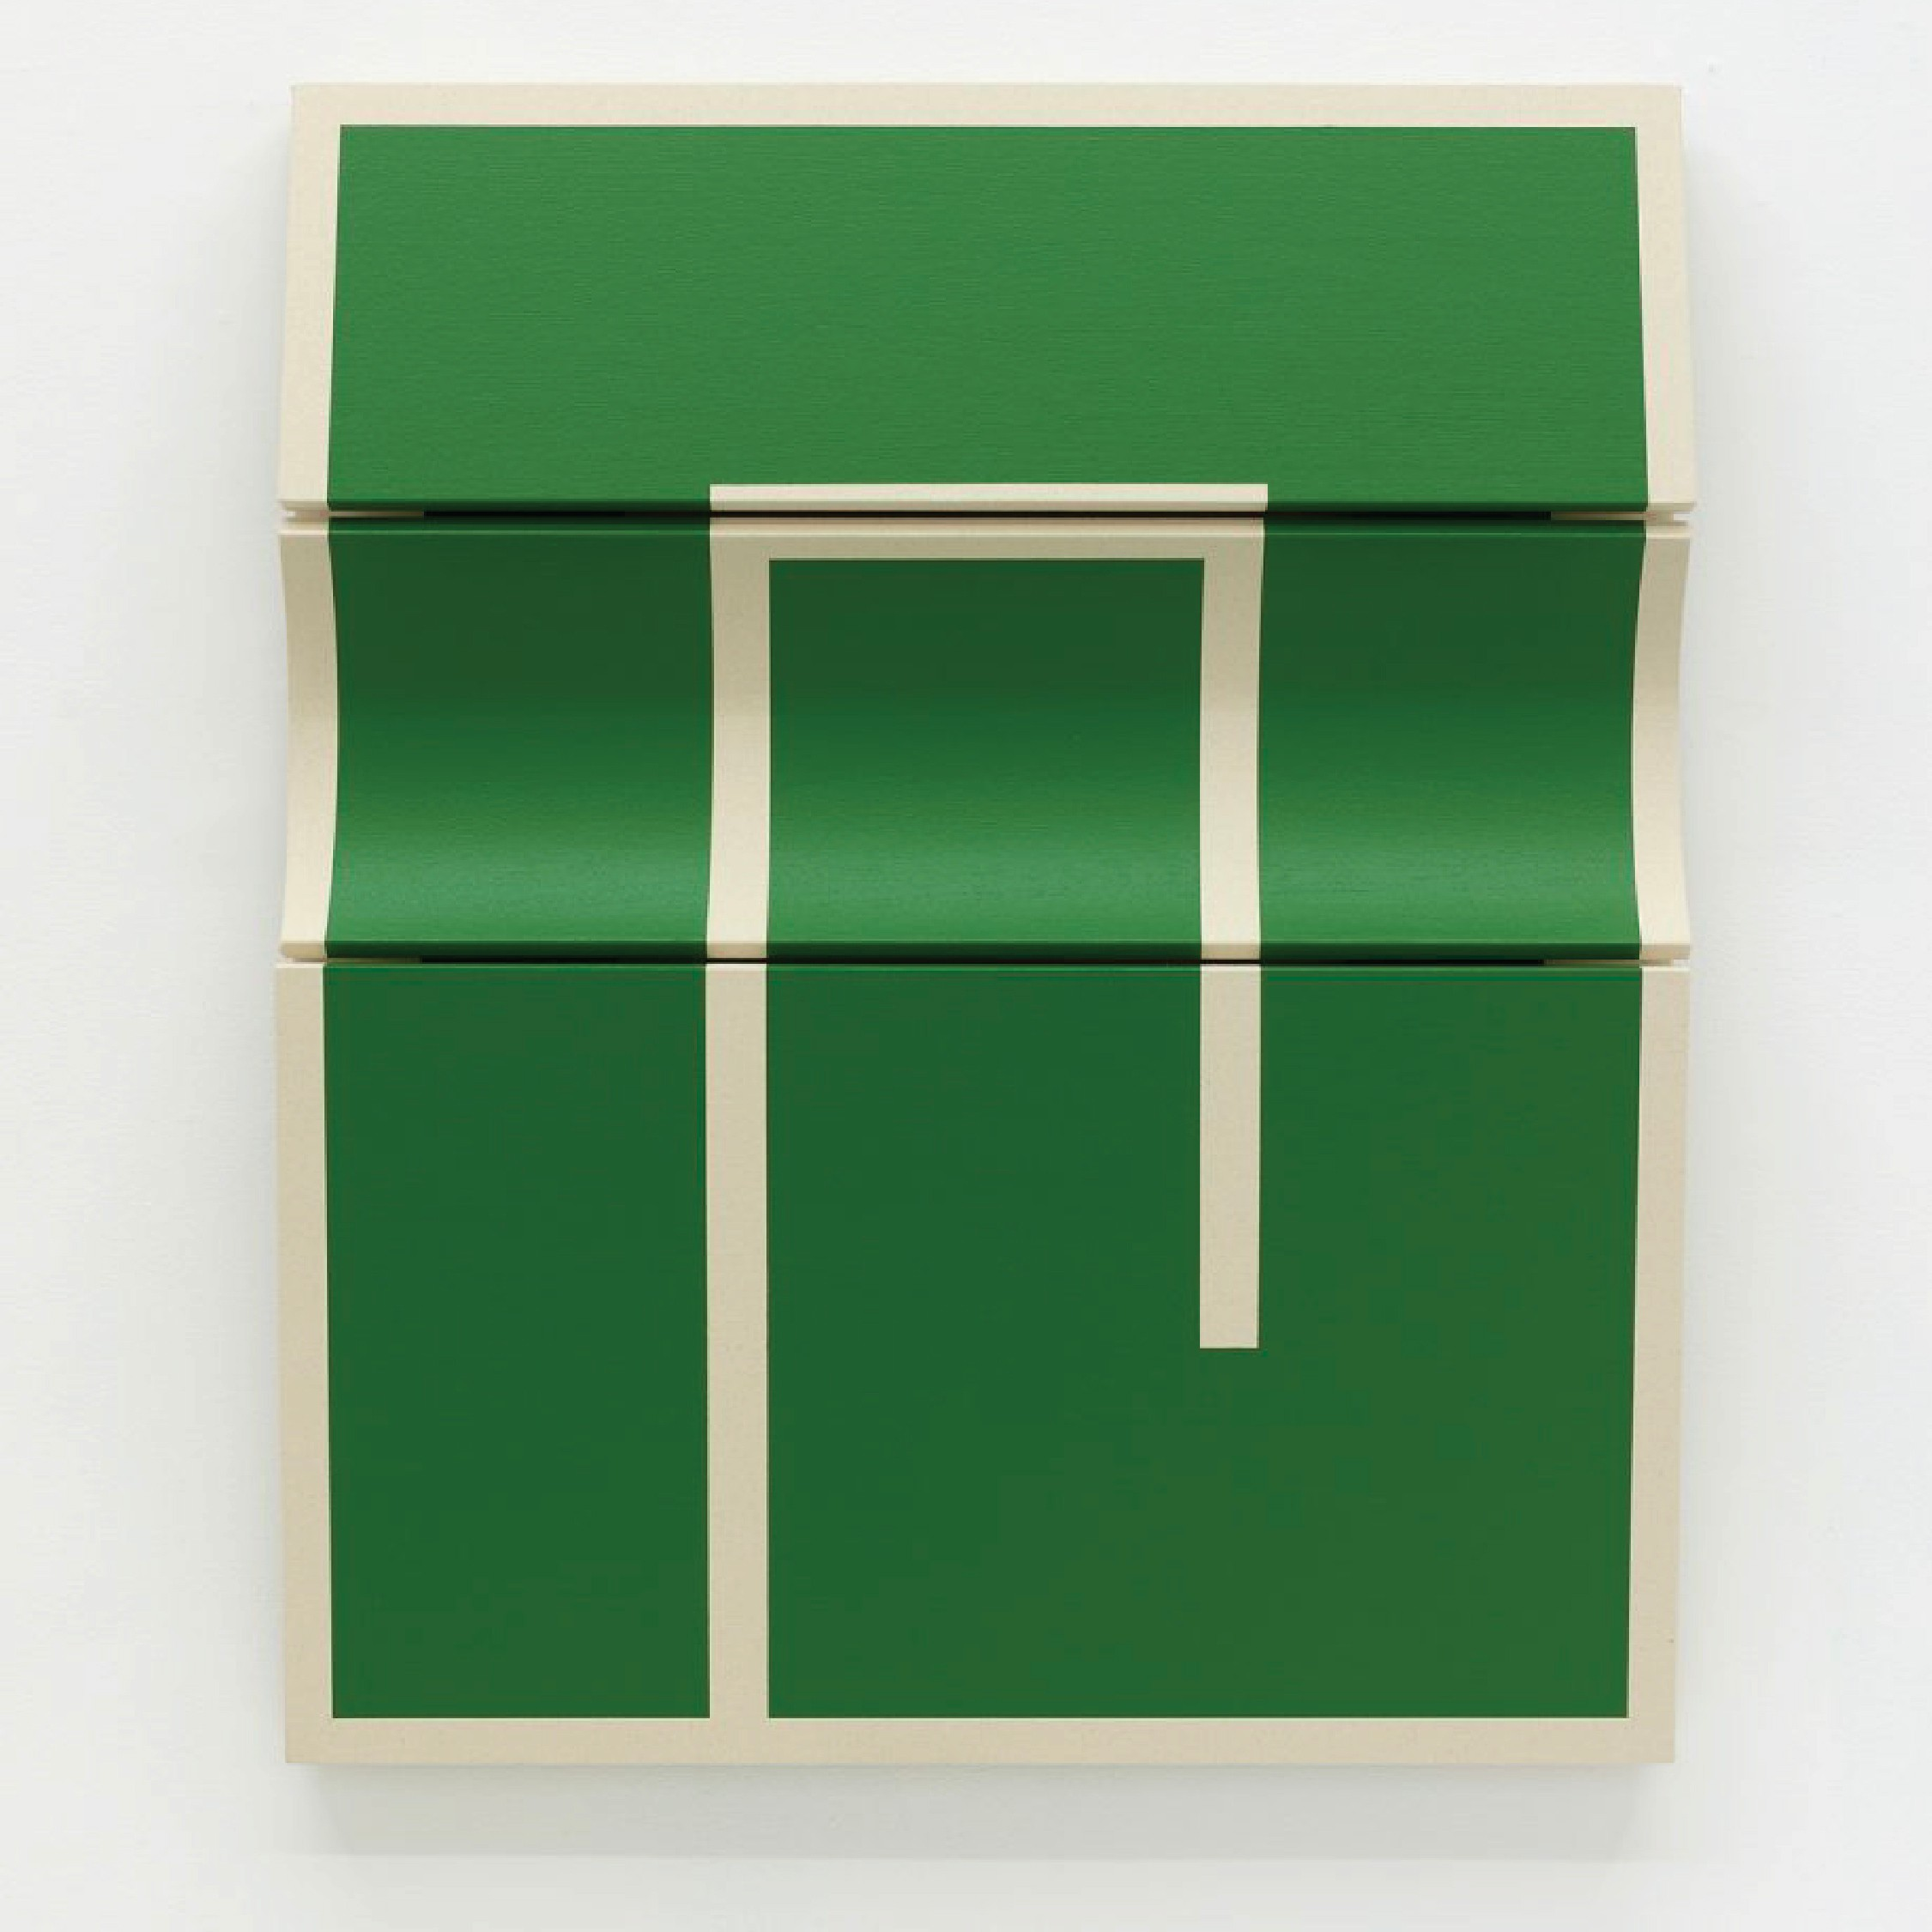 The image of an Untitled Green Segment II, Robert Moreland product